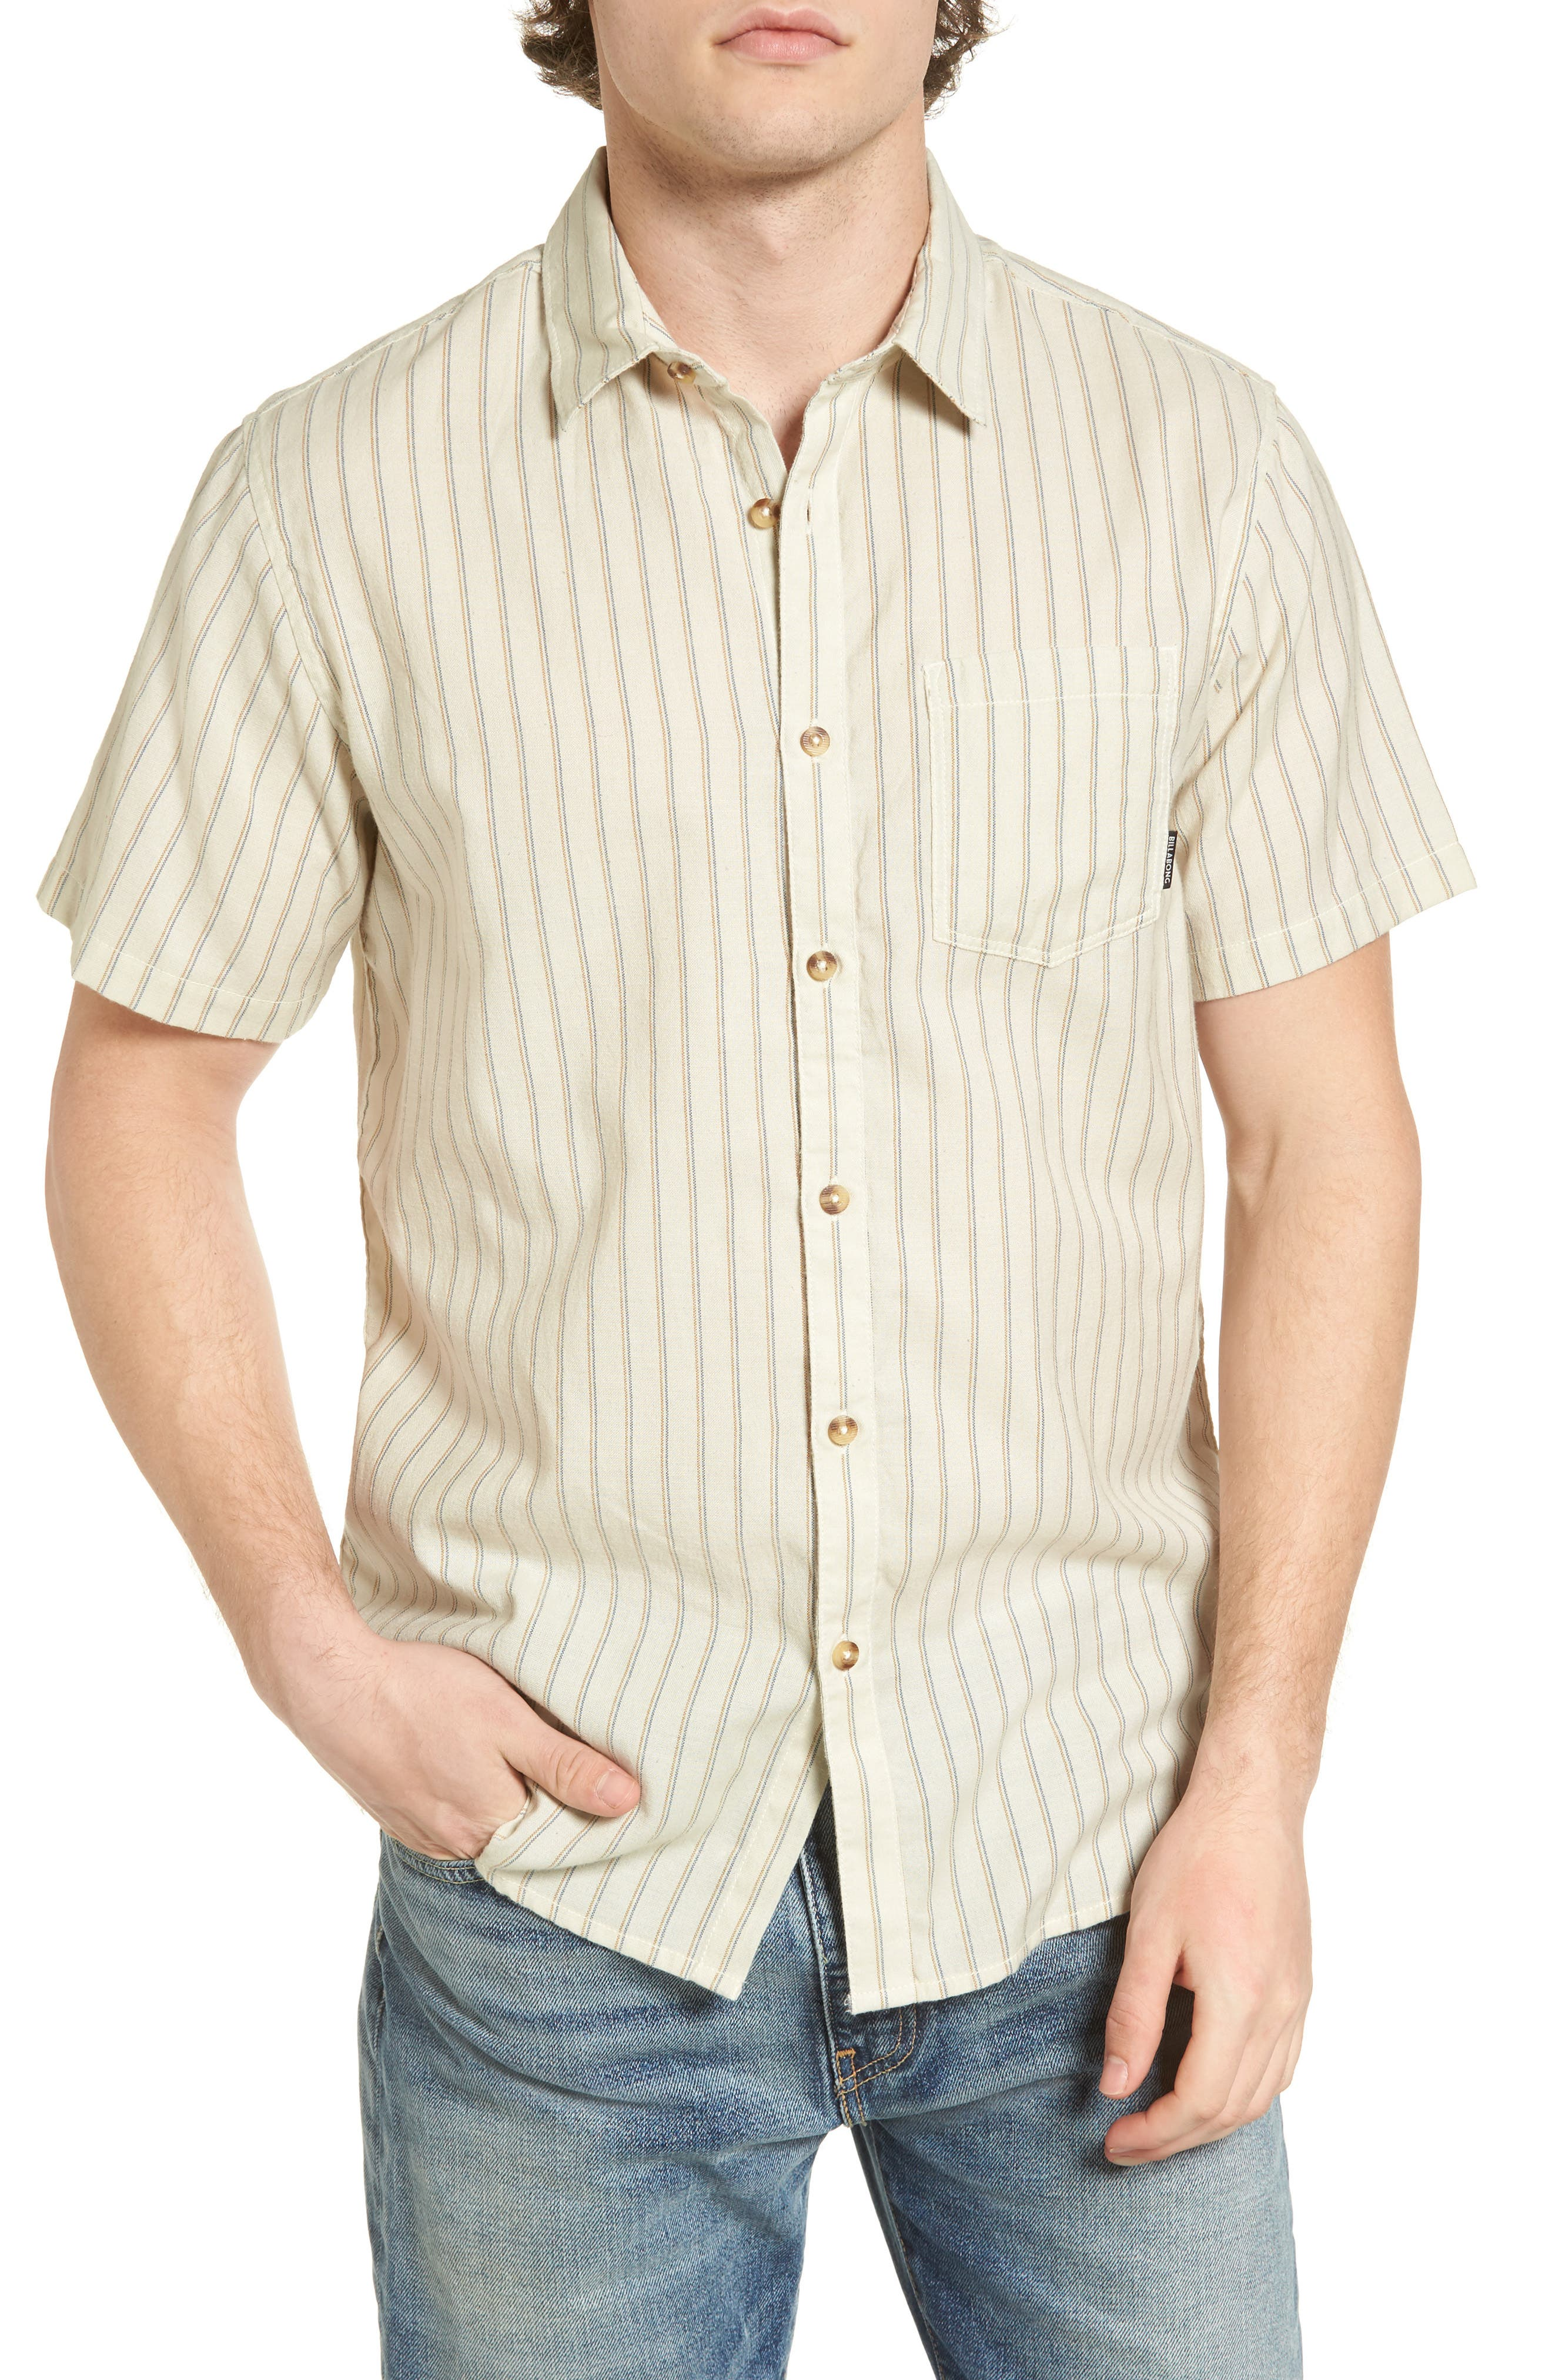 Kelso Tailored Fit Stripe Shirt,                             Main thumbnail 1, color,                             061